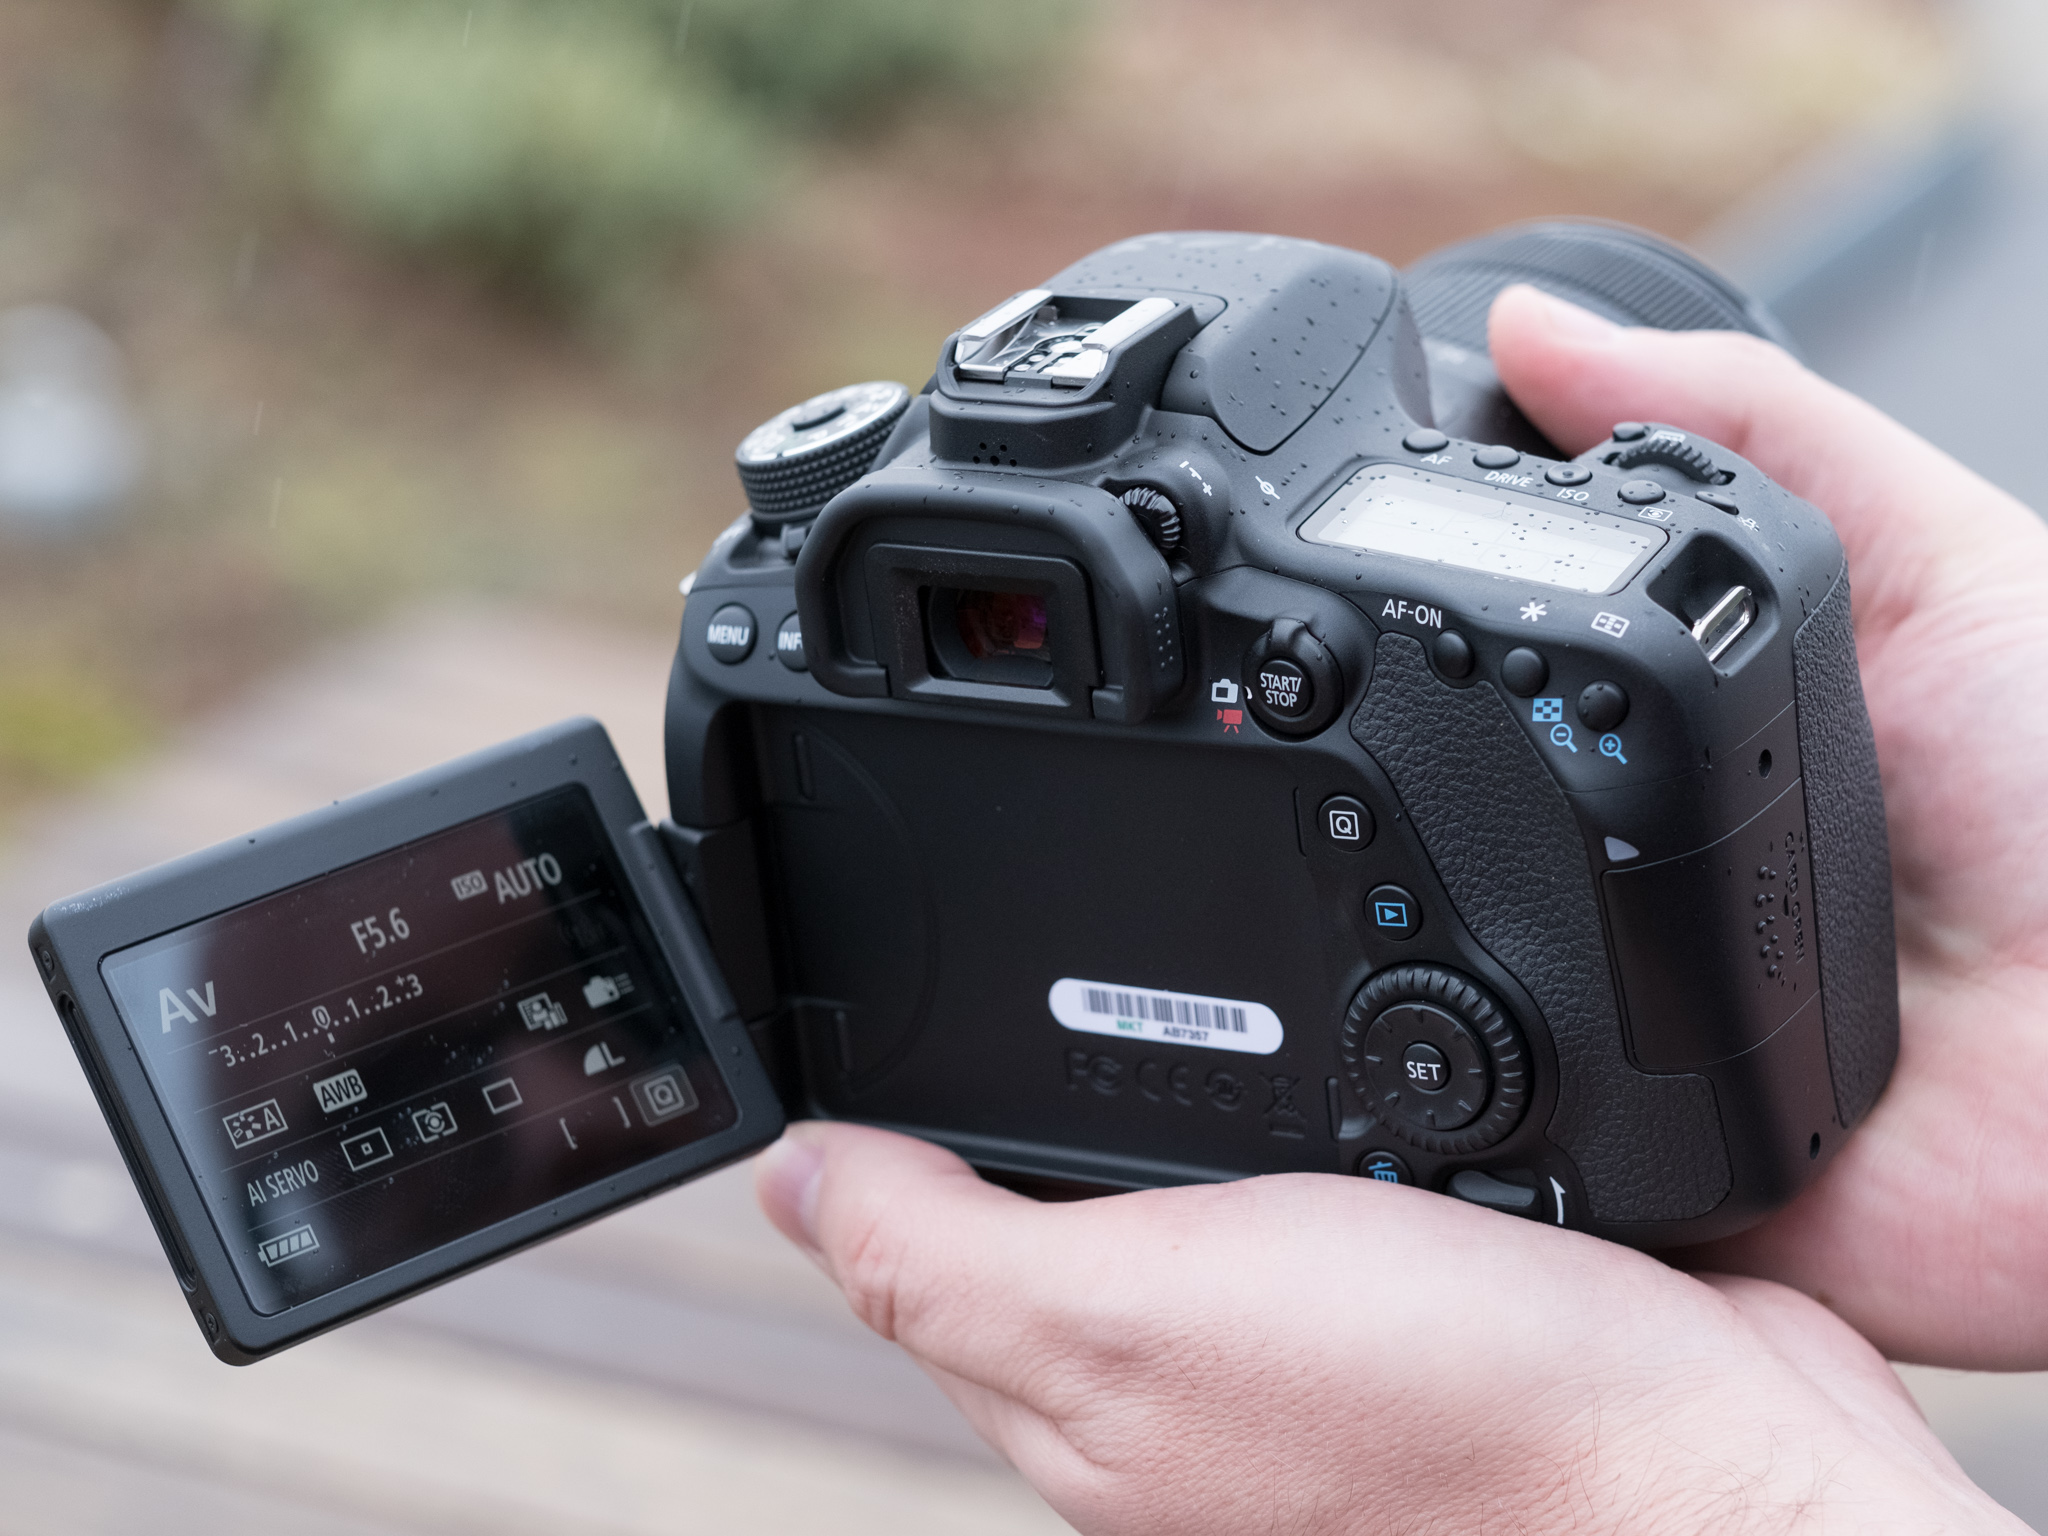 Newly enthused: hands on with the Canon EOS 80D – Photography